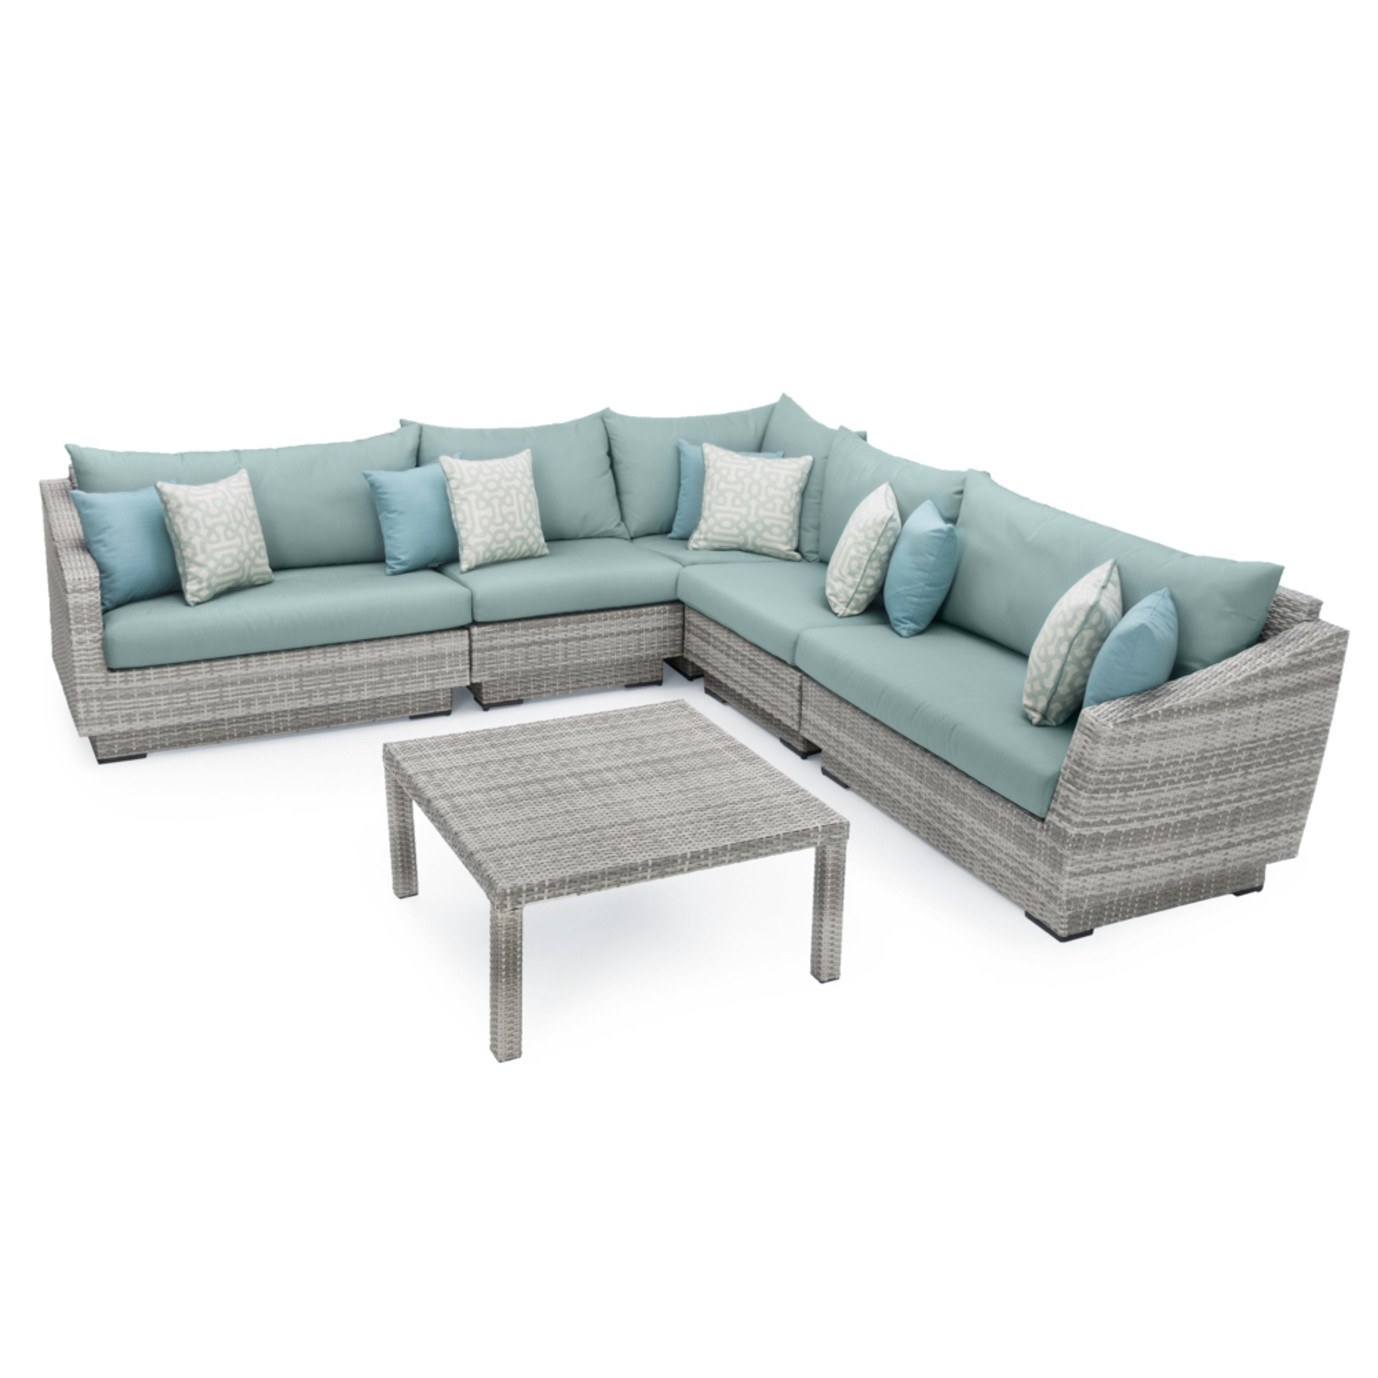 Cannes™ 6 Piece Sectional & Table - Spa Blue